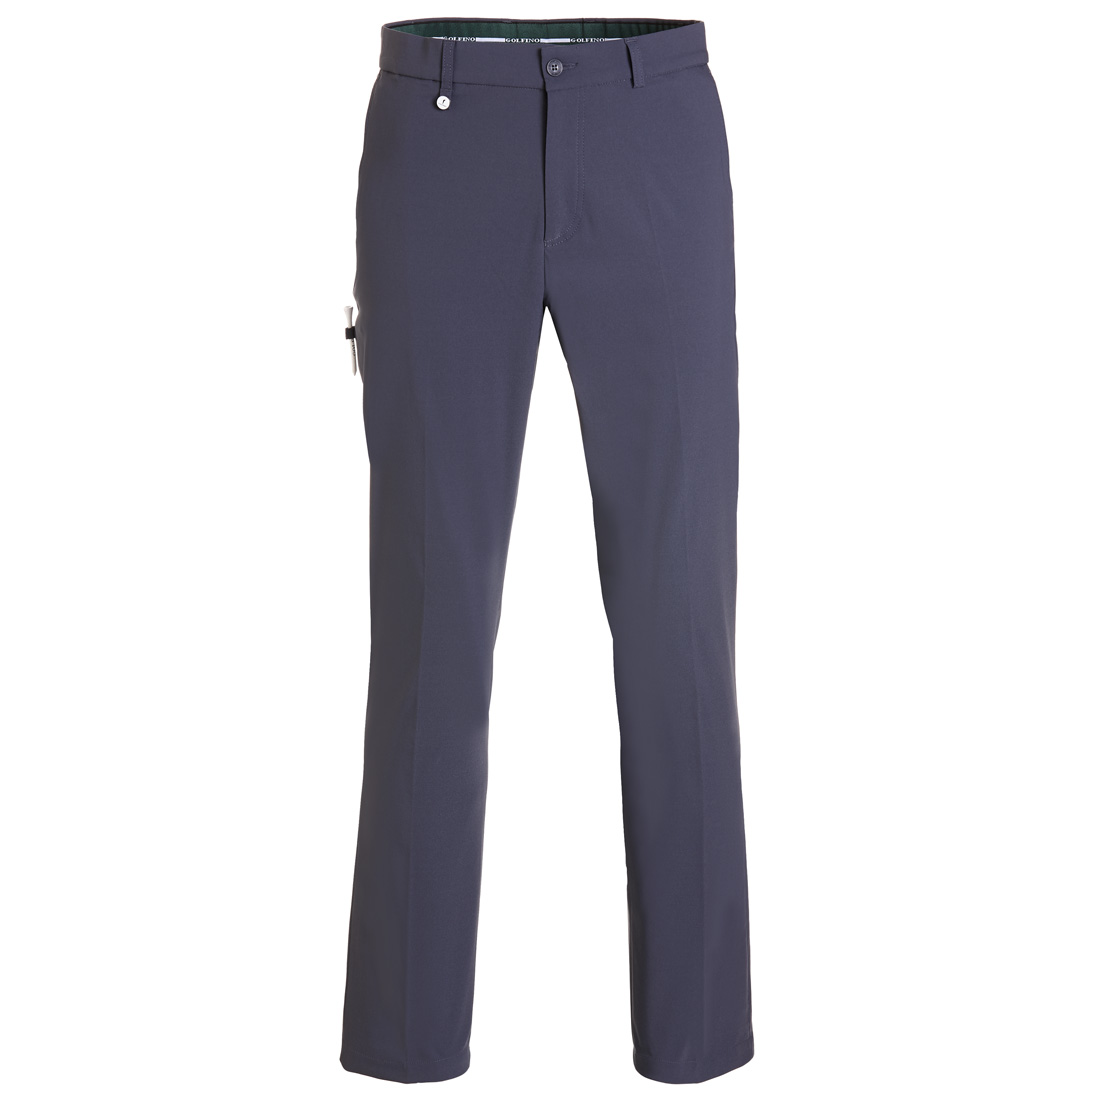 Brushed techno stretch trousers